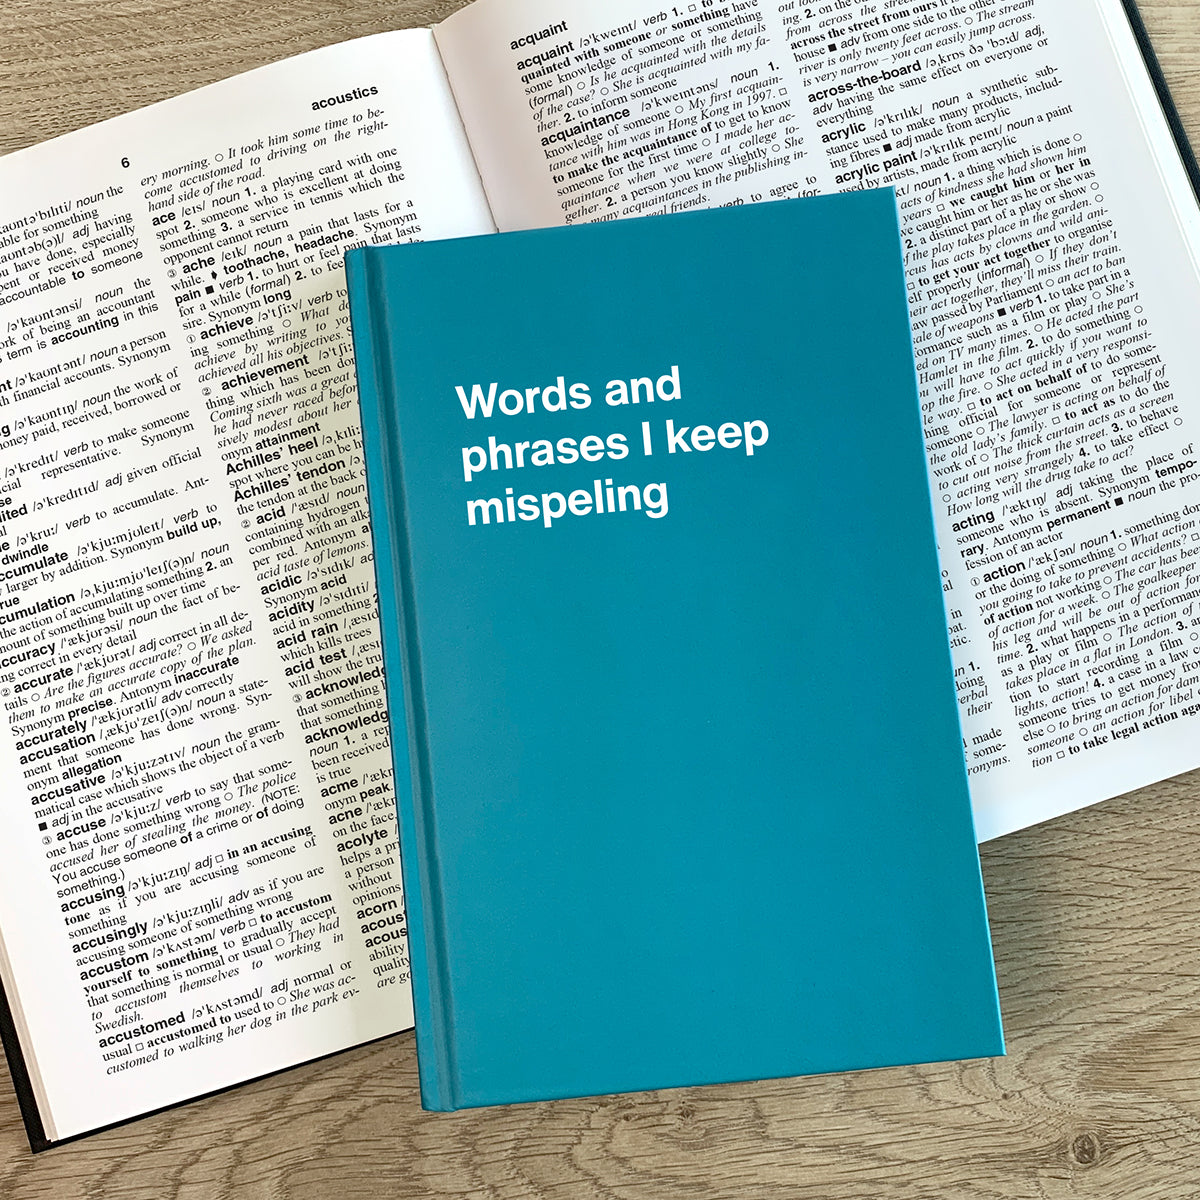 Words and phrases I keep mispeling